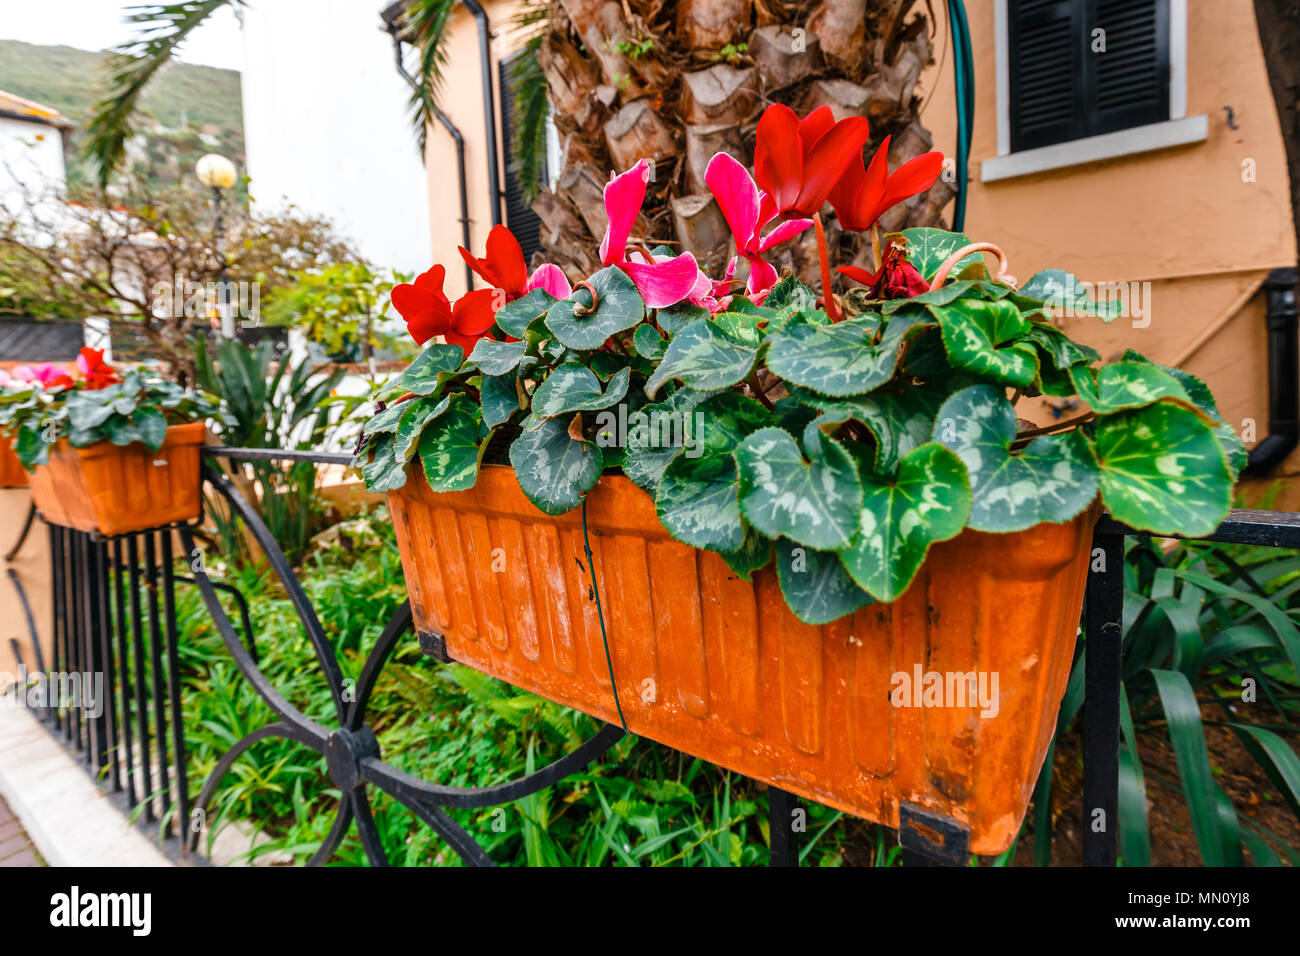 Potted spring flowers on a fence close up stock photo 185033136 potted spring flowers on a fence close up mightylinksfo